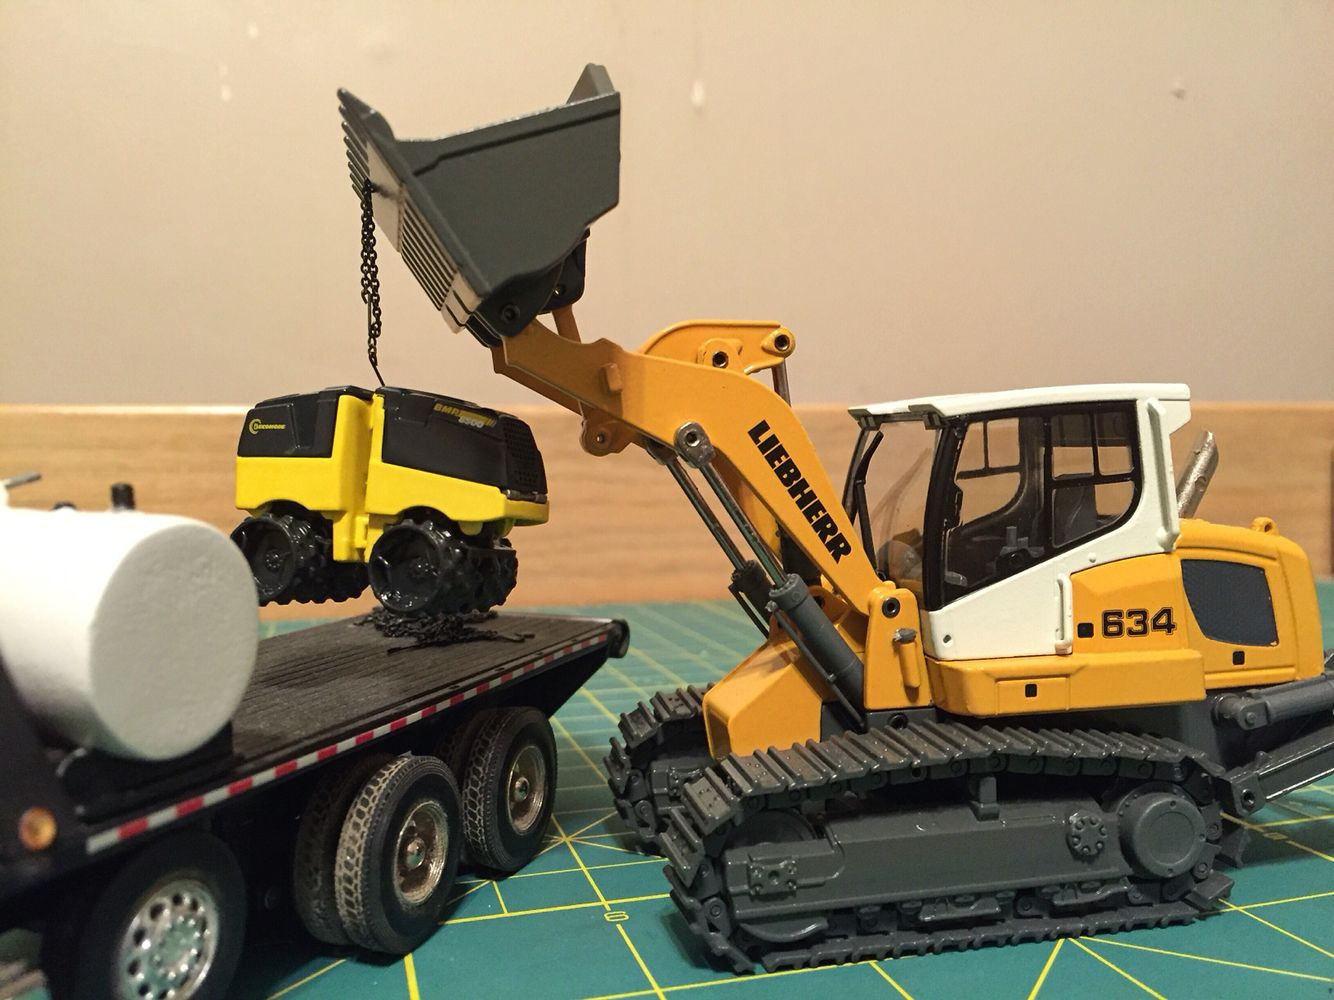 Cat 312 And Komatsu Ck25 Diecast Construction Toy - Year of